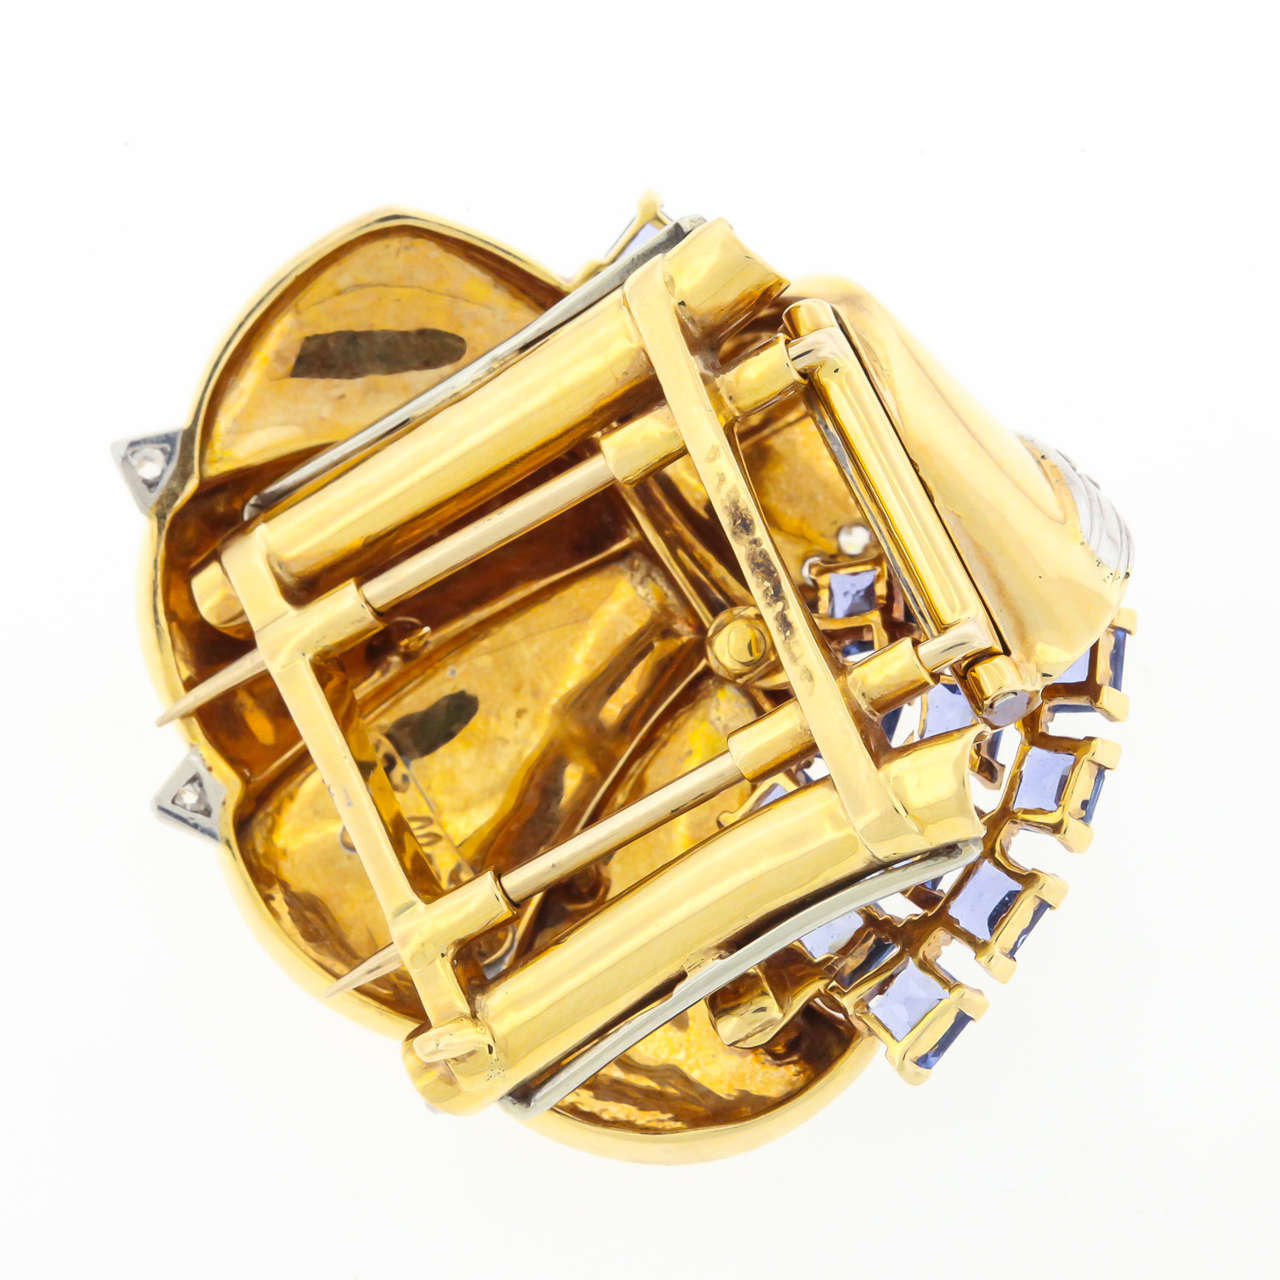 Mauboussin Retro Reflection Sapphire Diamond Gold Clip Brooch In Good Condition For Sale In New York, NY